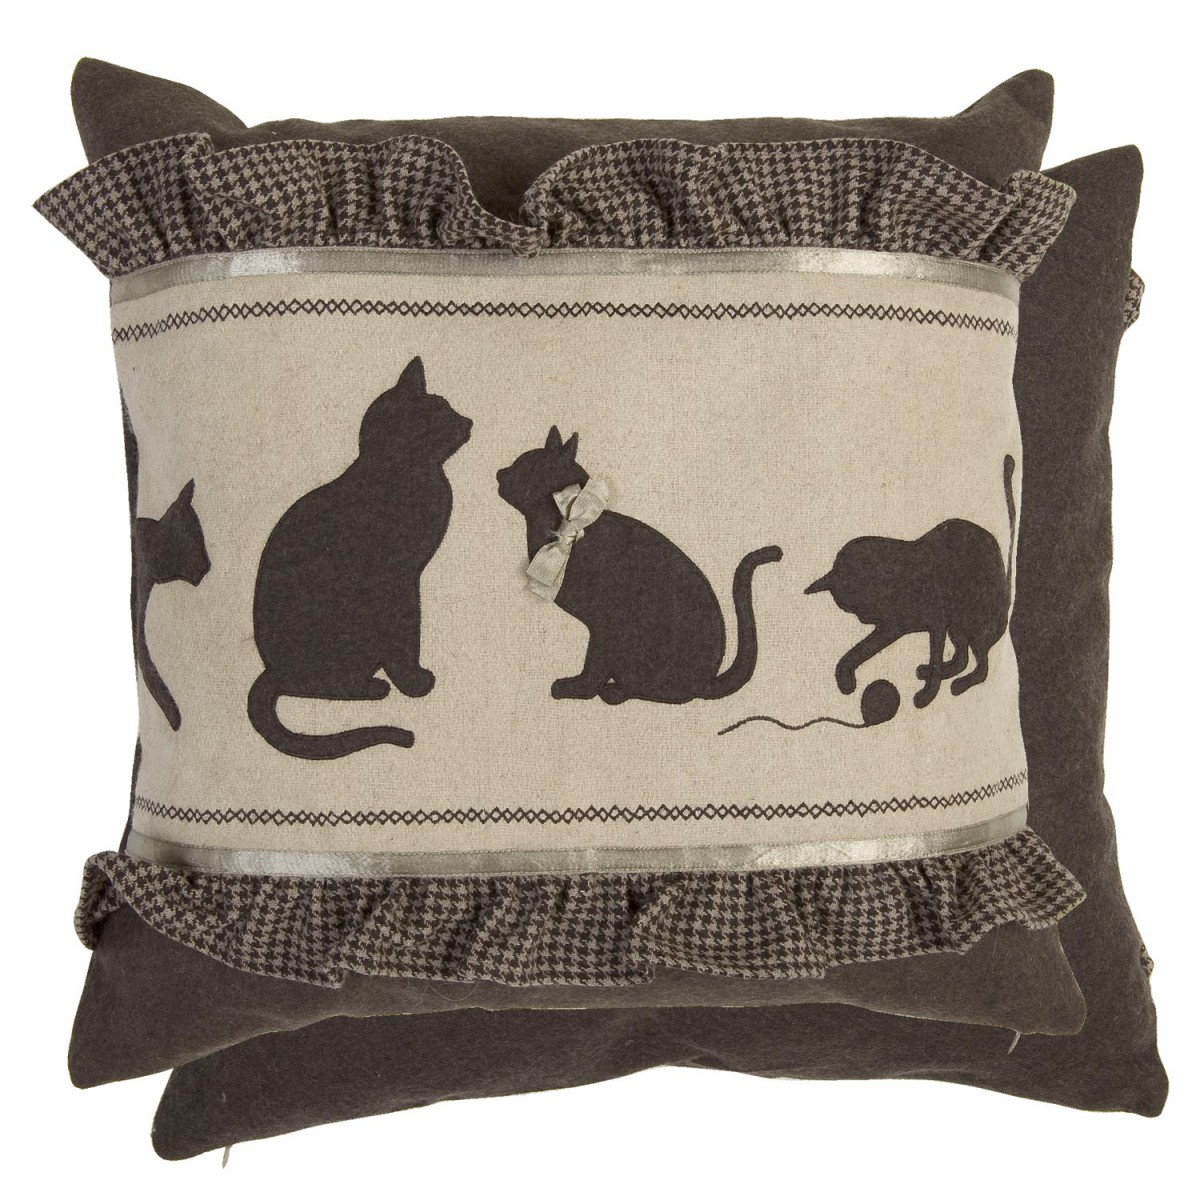 Clayre eef kissenh lle katzen r schen 50x50cm for Autrefois decoration